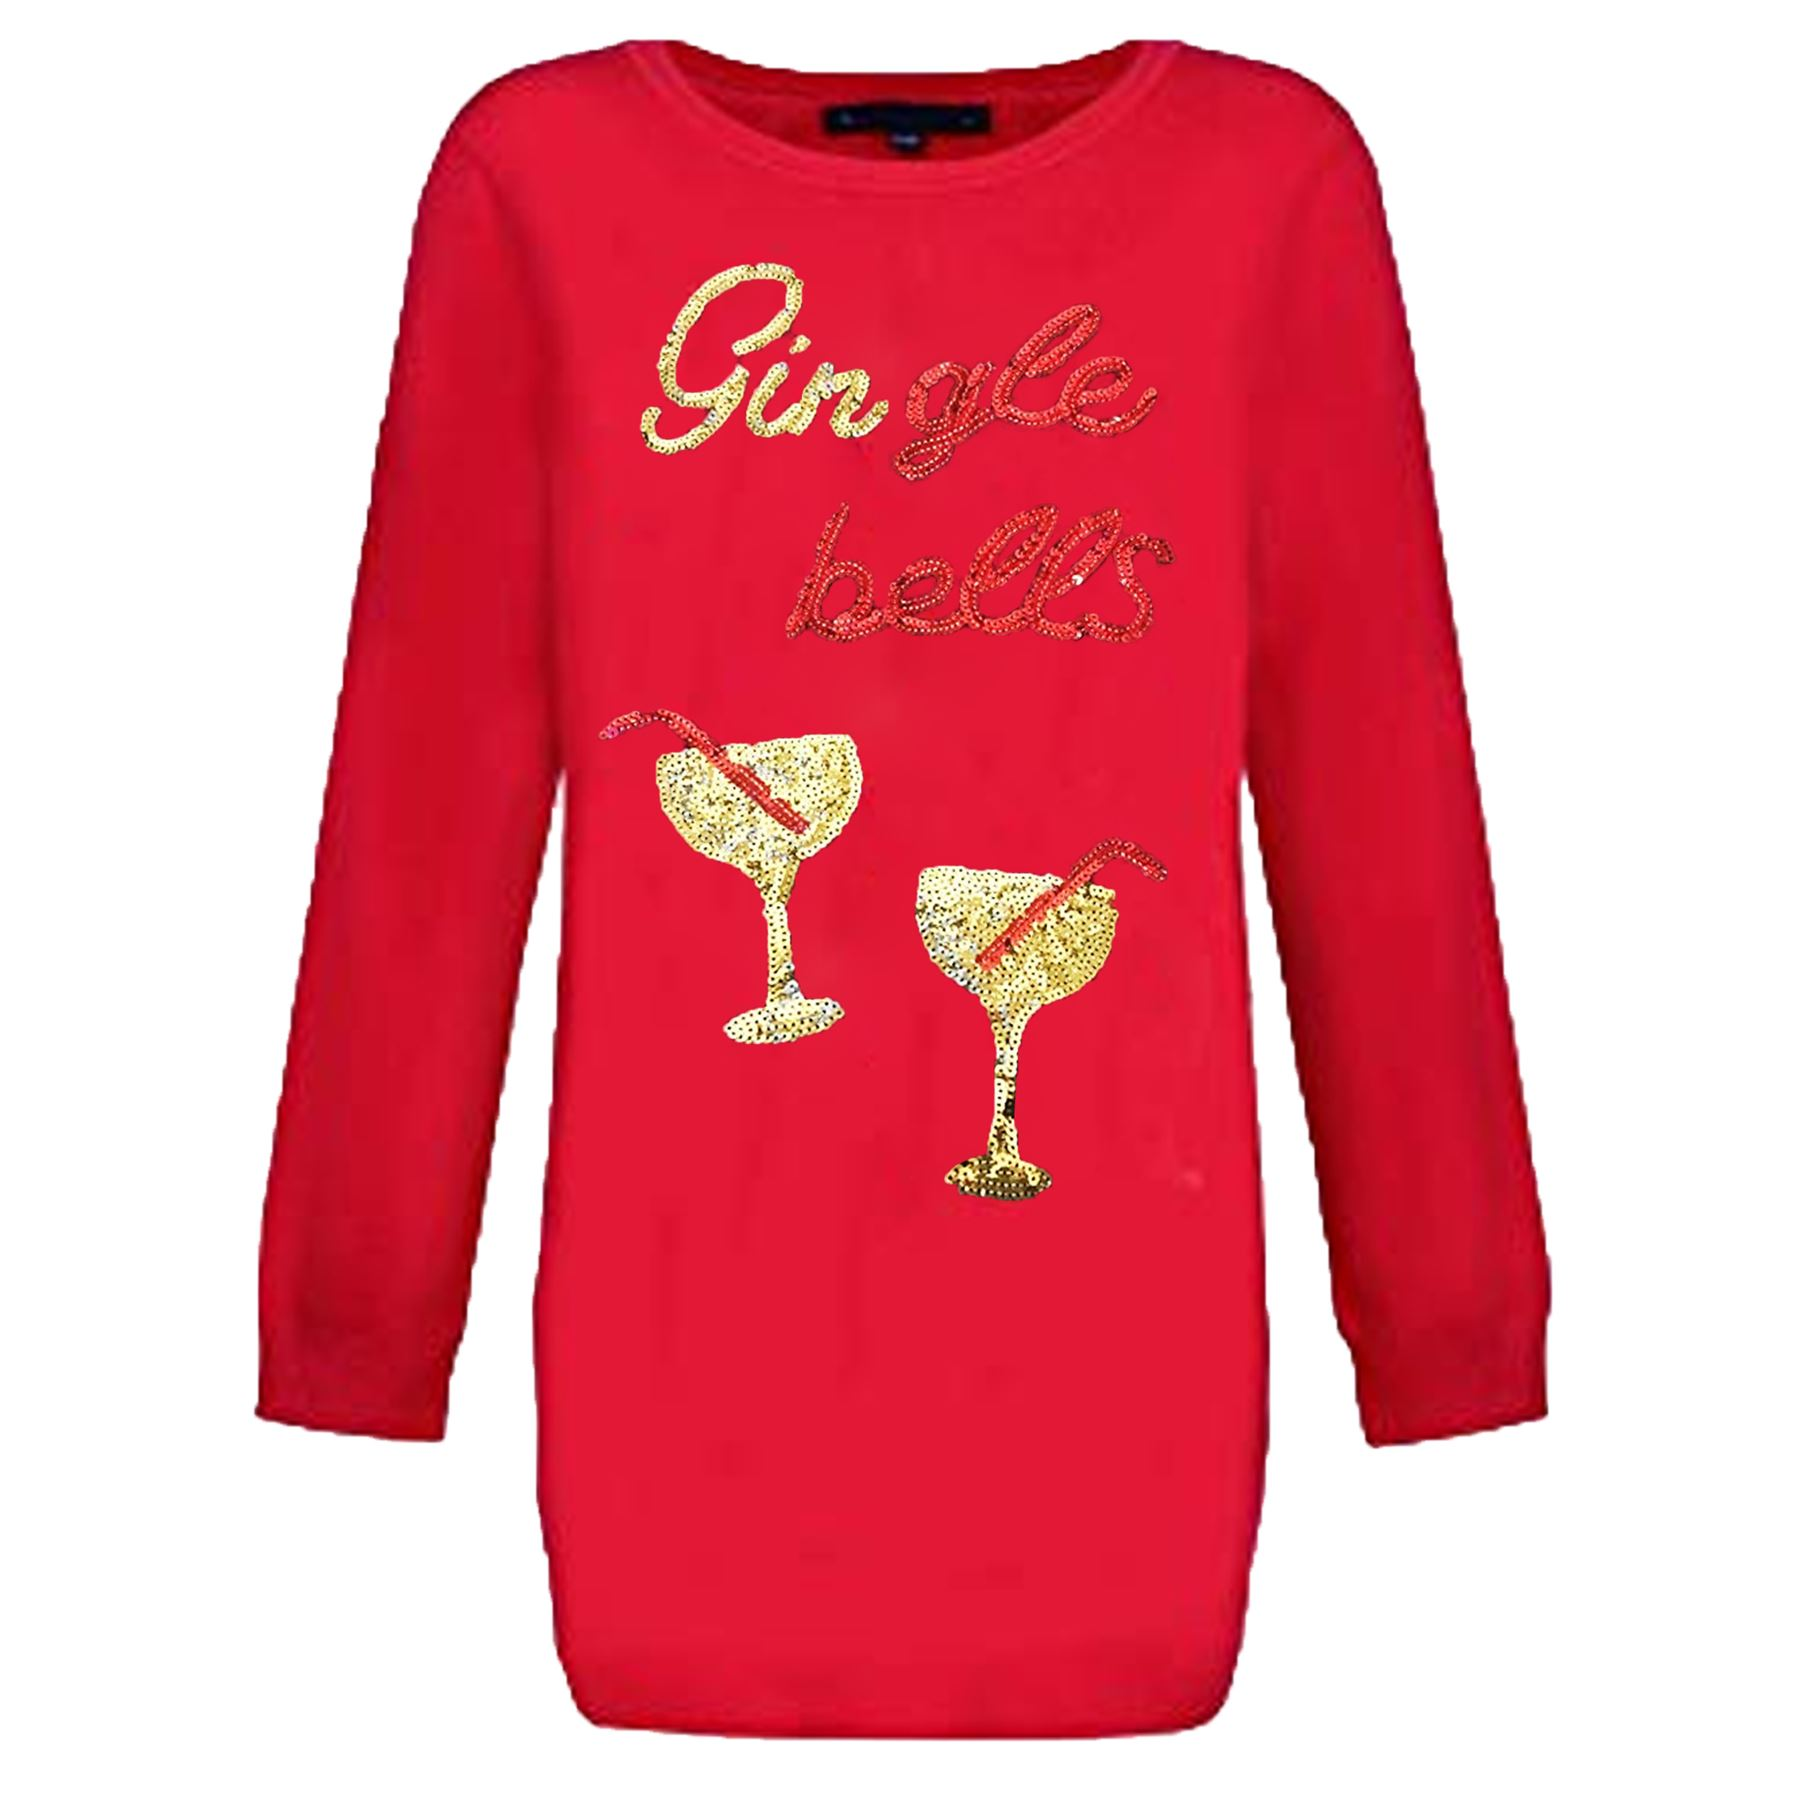 79622bd5b05 Details about Ladies Christmas Novelty Gin Jumper Sequin Sparkly Xmas Top  Womens Tunic Sweater